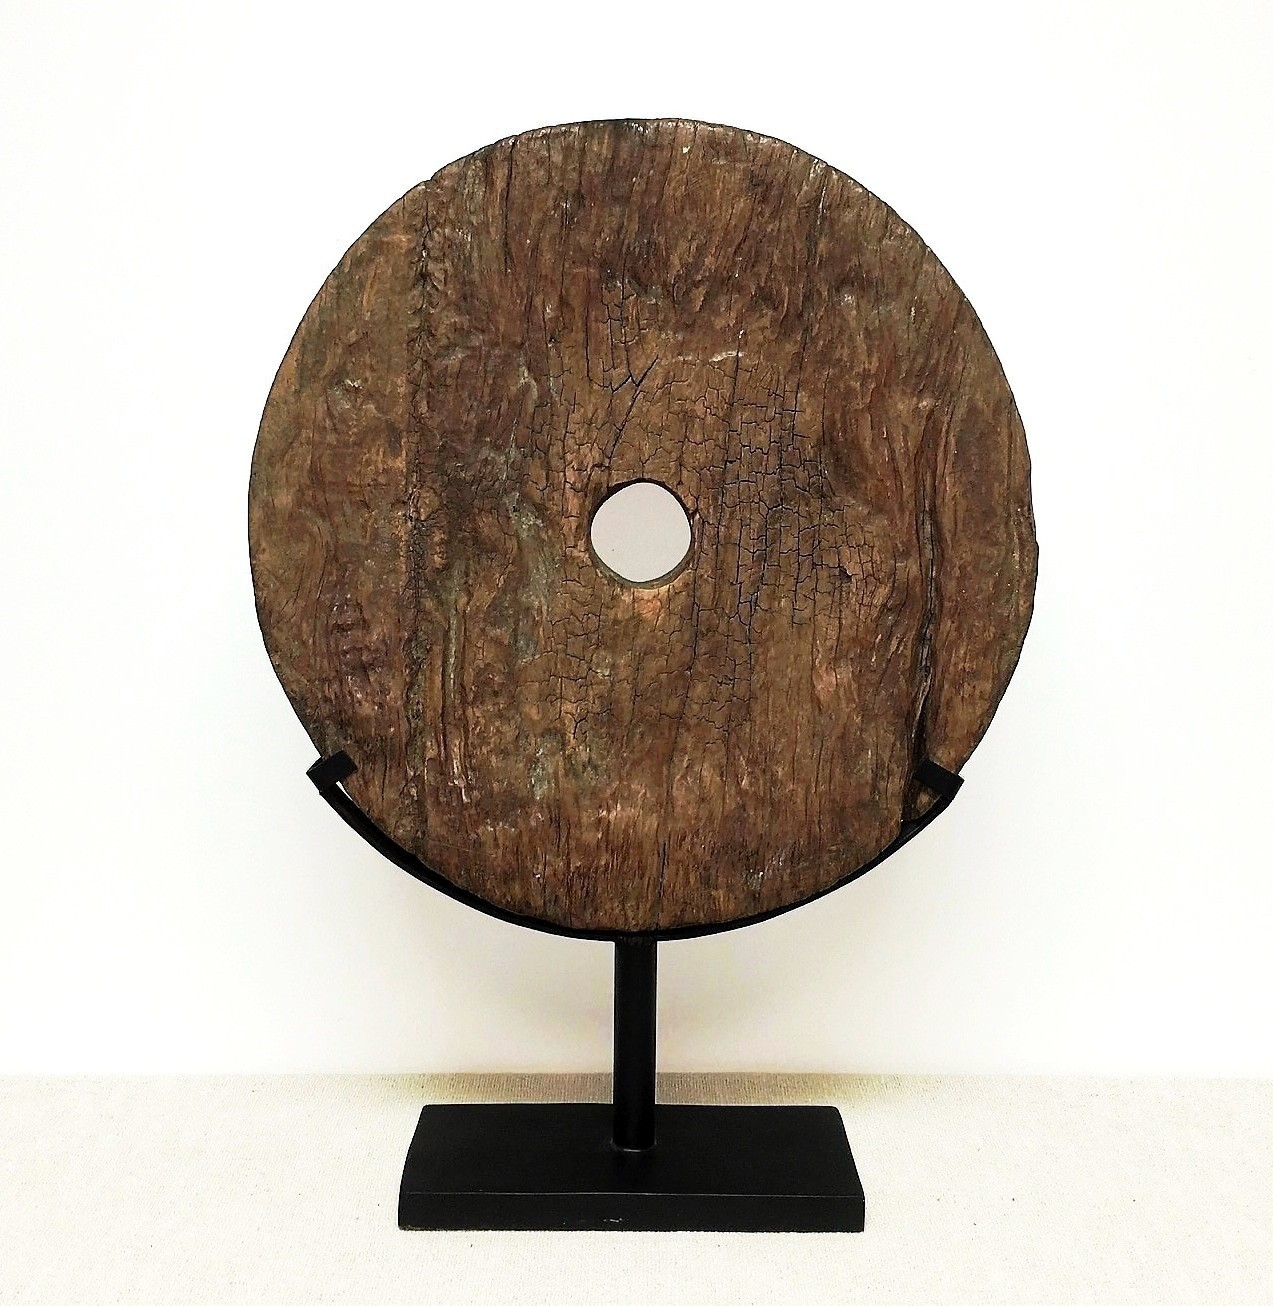 Old Teak Wheel Organic Art Sculpture